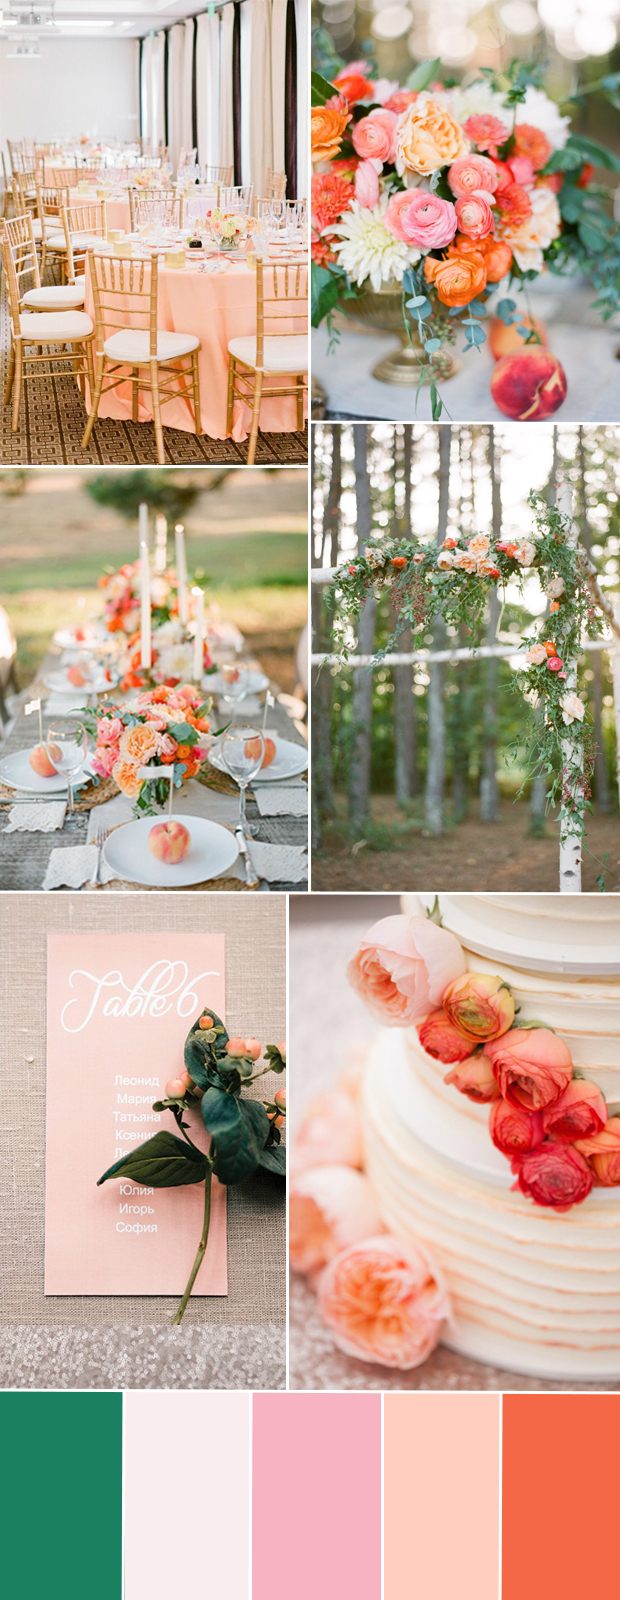 Wedding Decorations Colorful Five Popular Shades Of Pink Color Ideas For Your Dream Wedding 2015